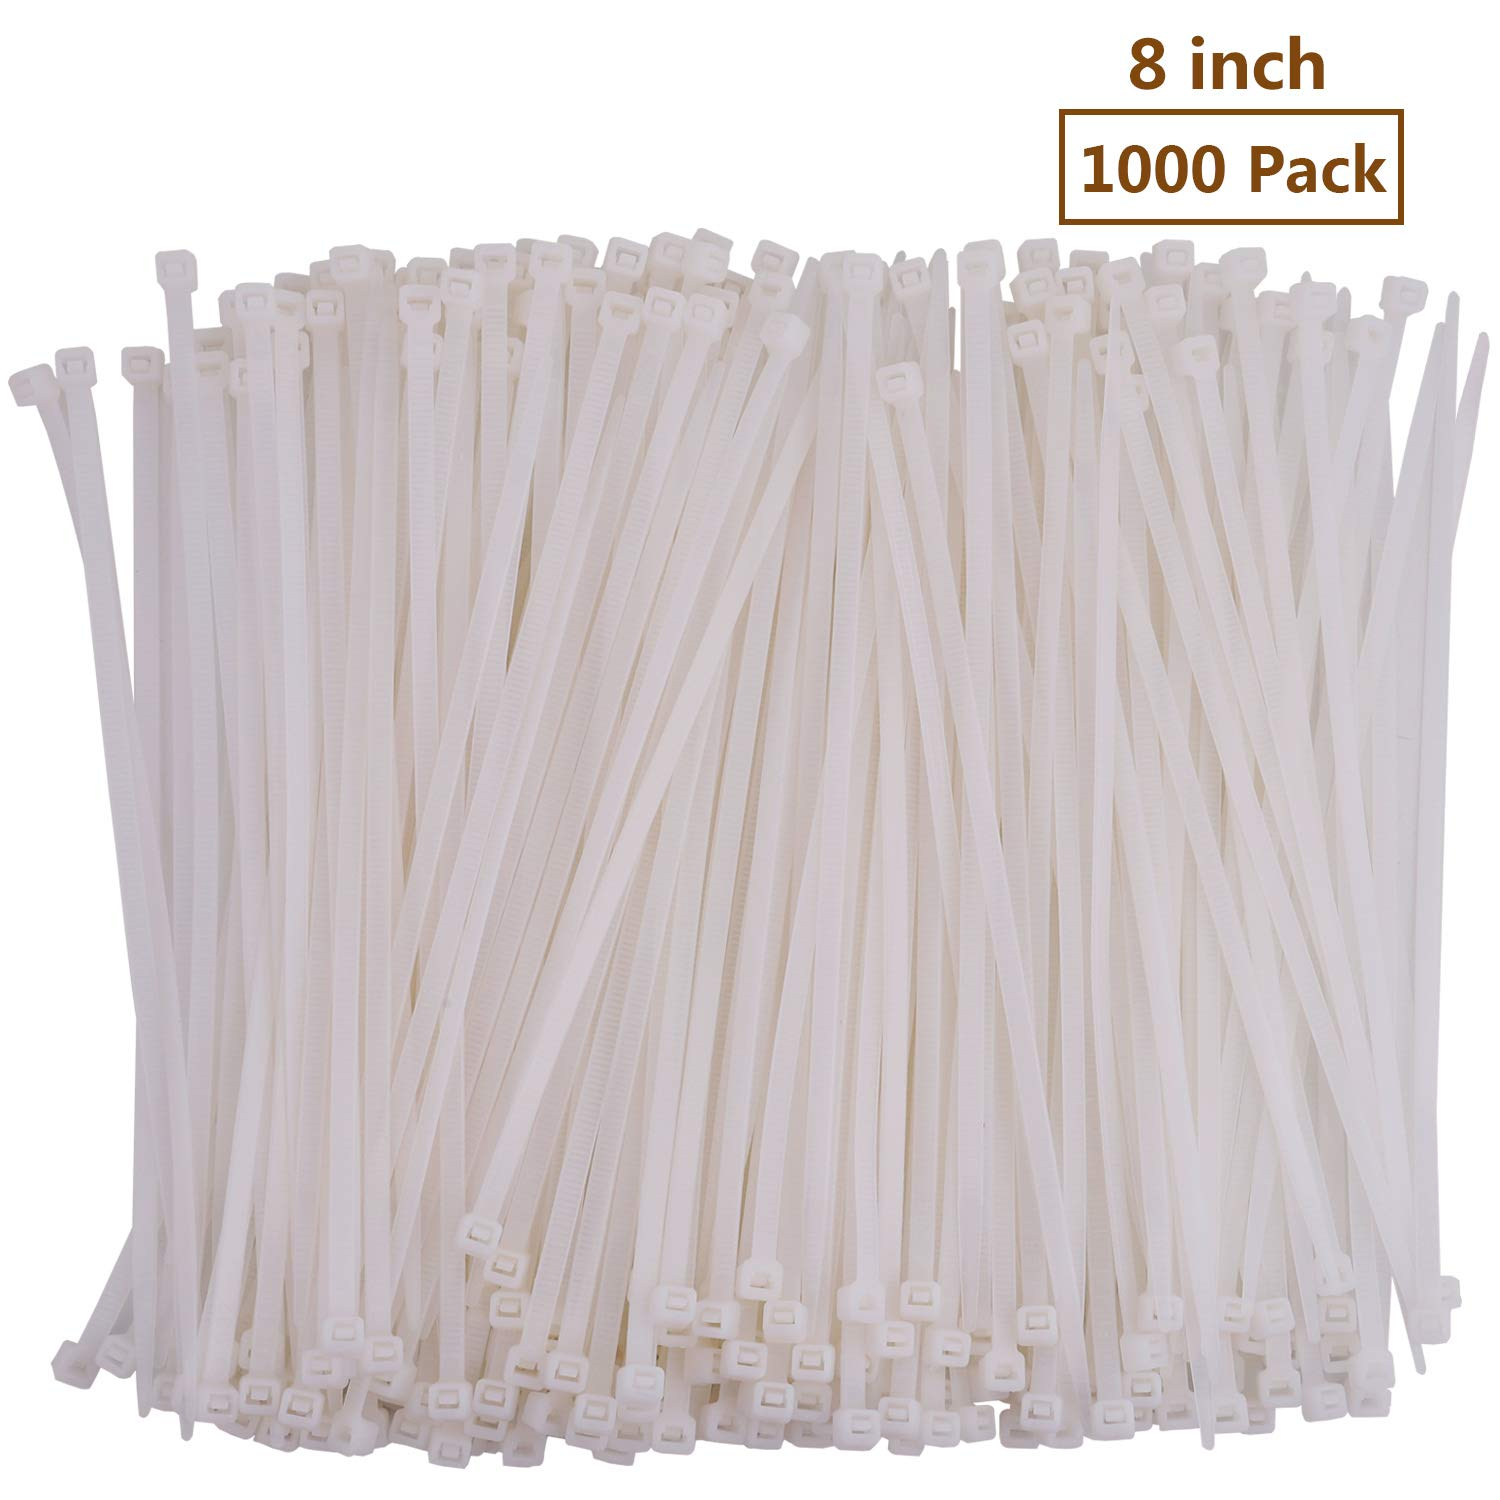 8'' White Cable Zip Ties, Premium Nylon Wire Management Ties 50 LB Tensile Strength (8 Inch, White, 1000 Pack)